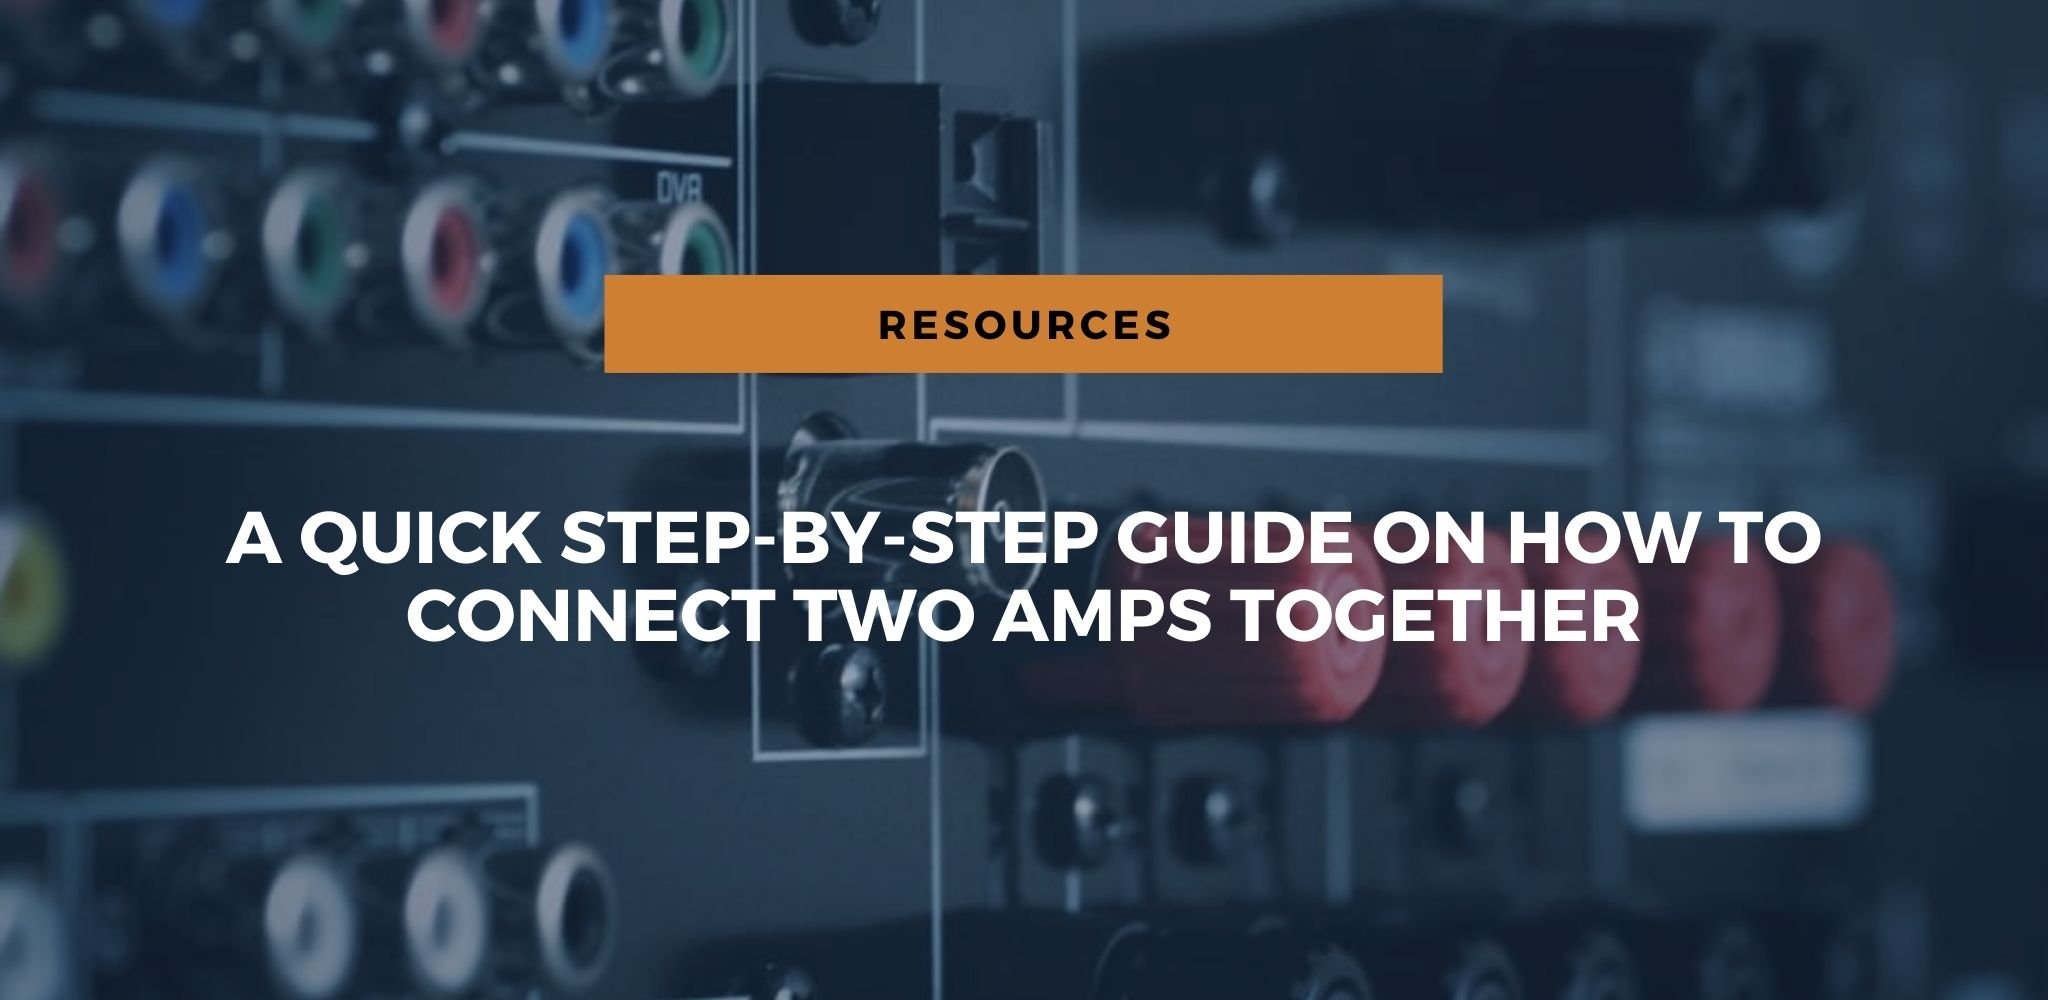 How To Connect Two Amps Together A Quick Step By Step Guide